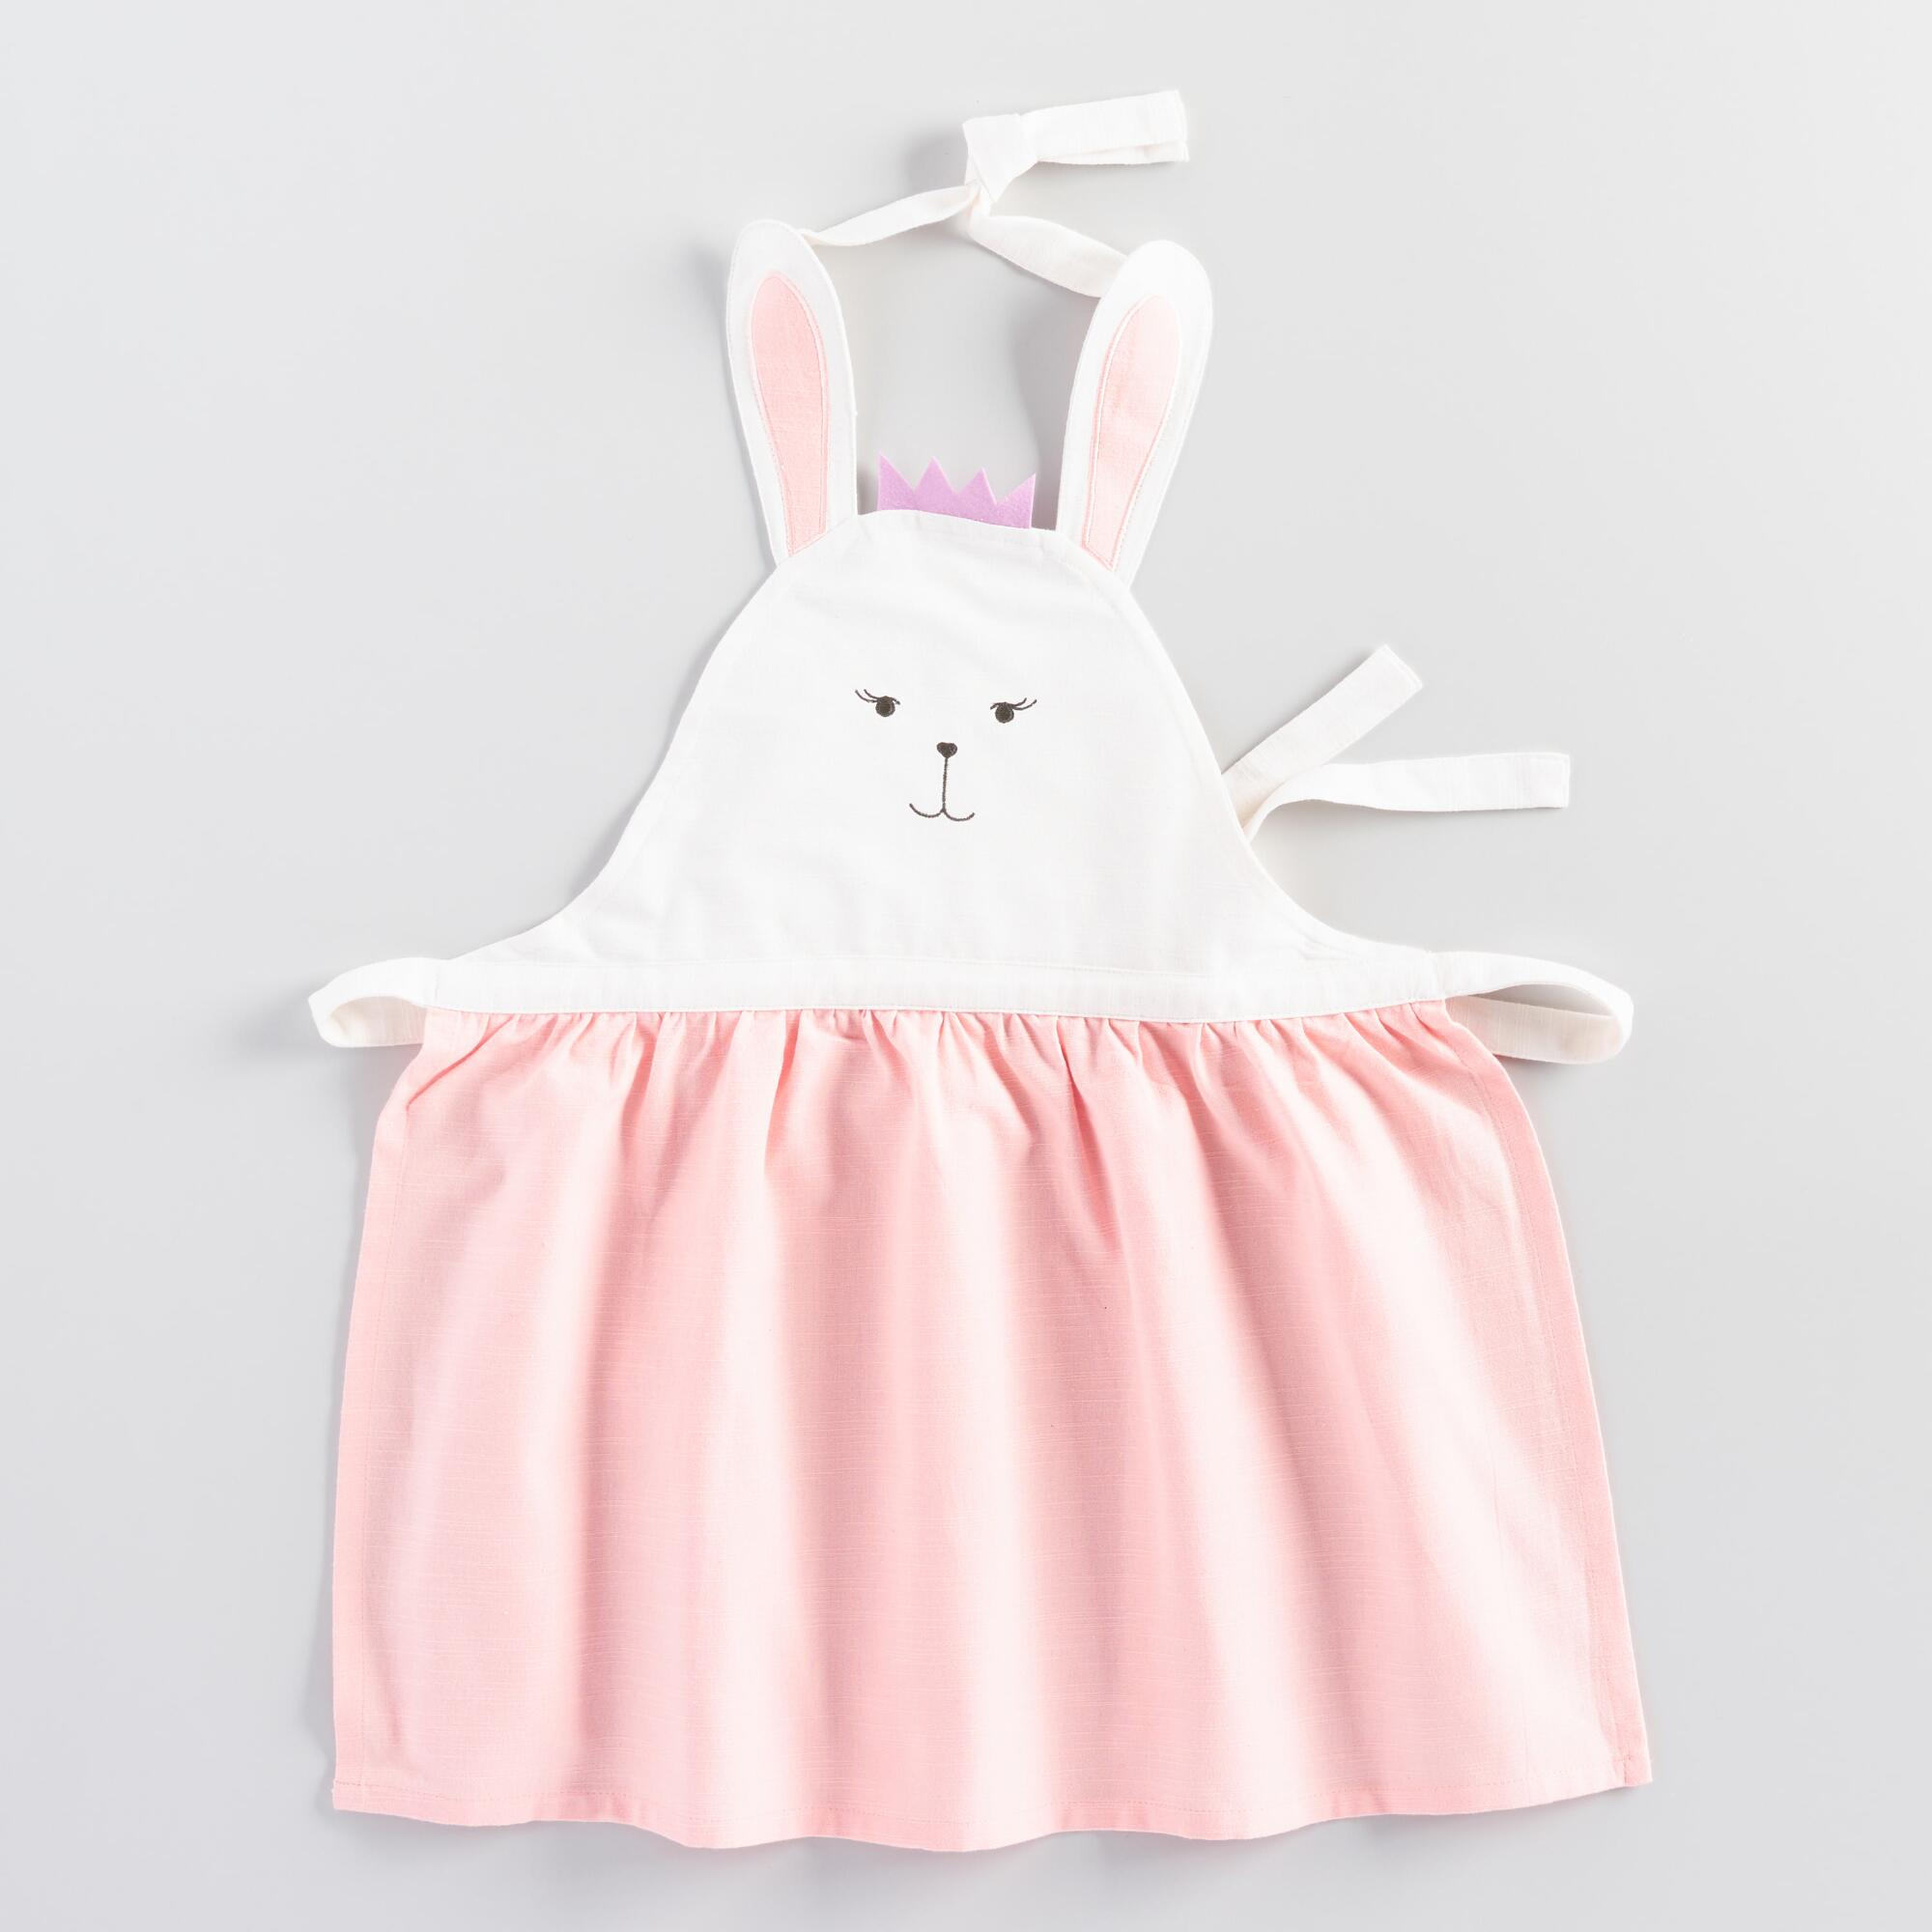 10 Things to Do with Vintage Aprons Kids Pink Bunny Apron - Cotton by World Market $12.99 AT vintagedancer.com